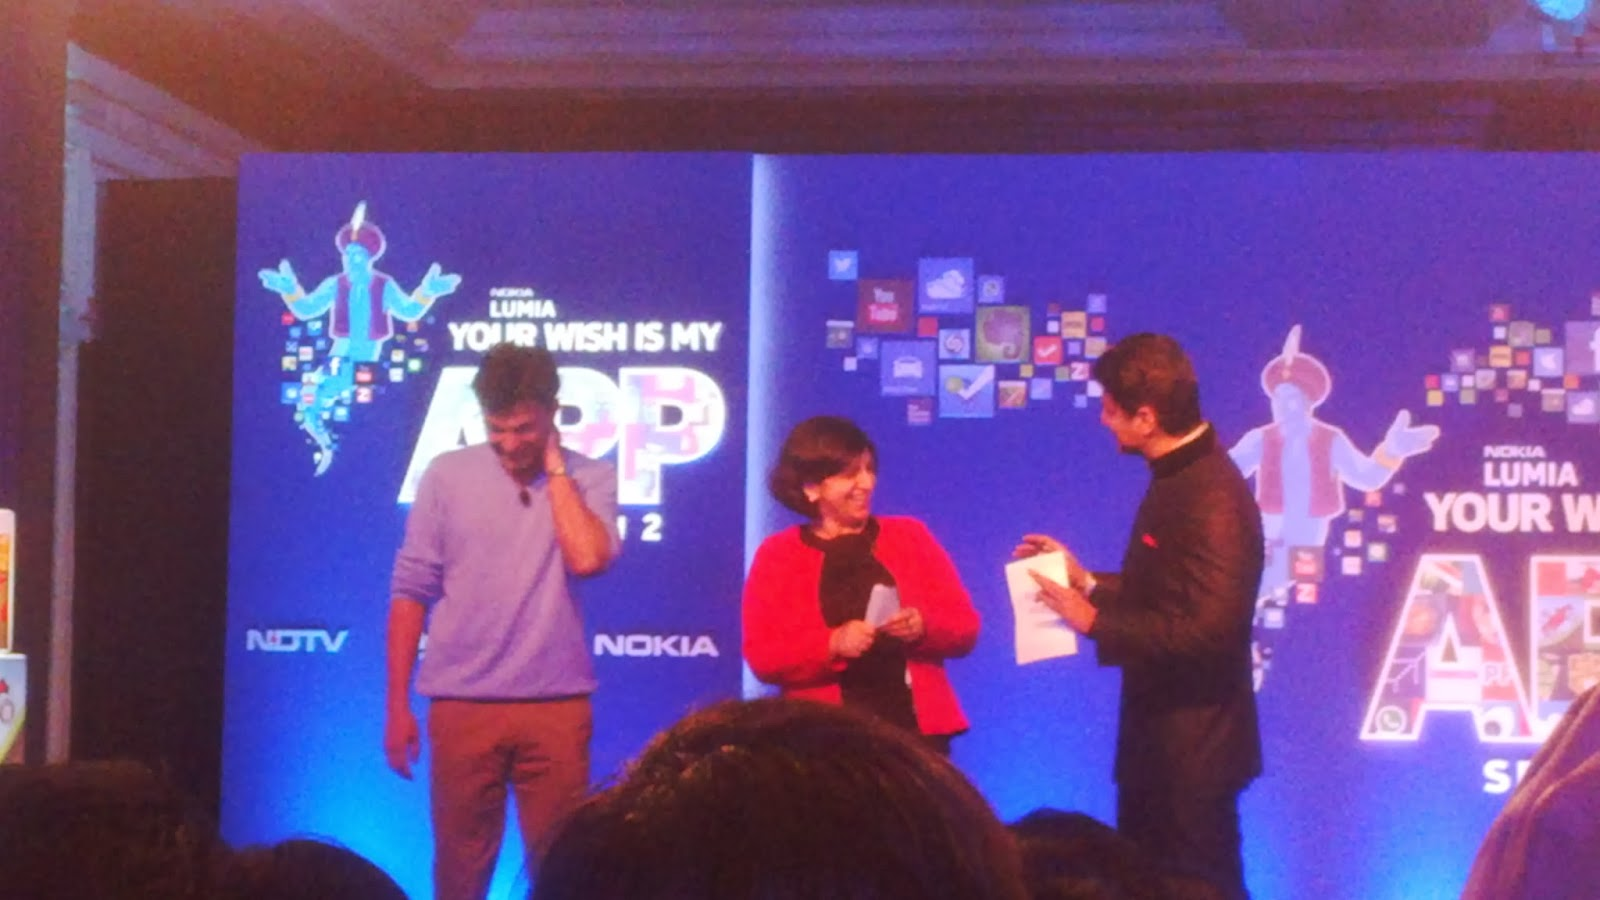 Nokia presents Your wish is my App II @ IndiBlogger's Indimeet